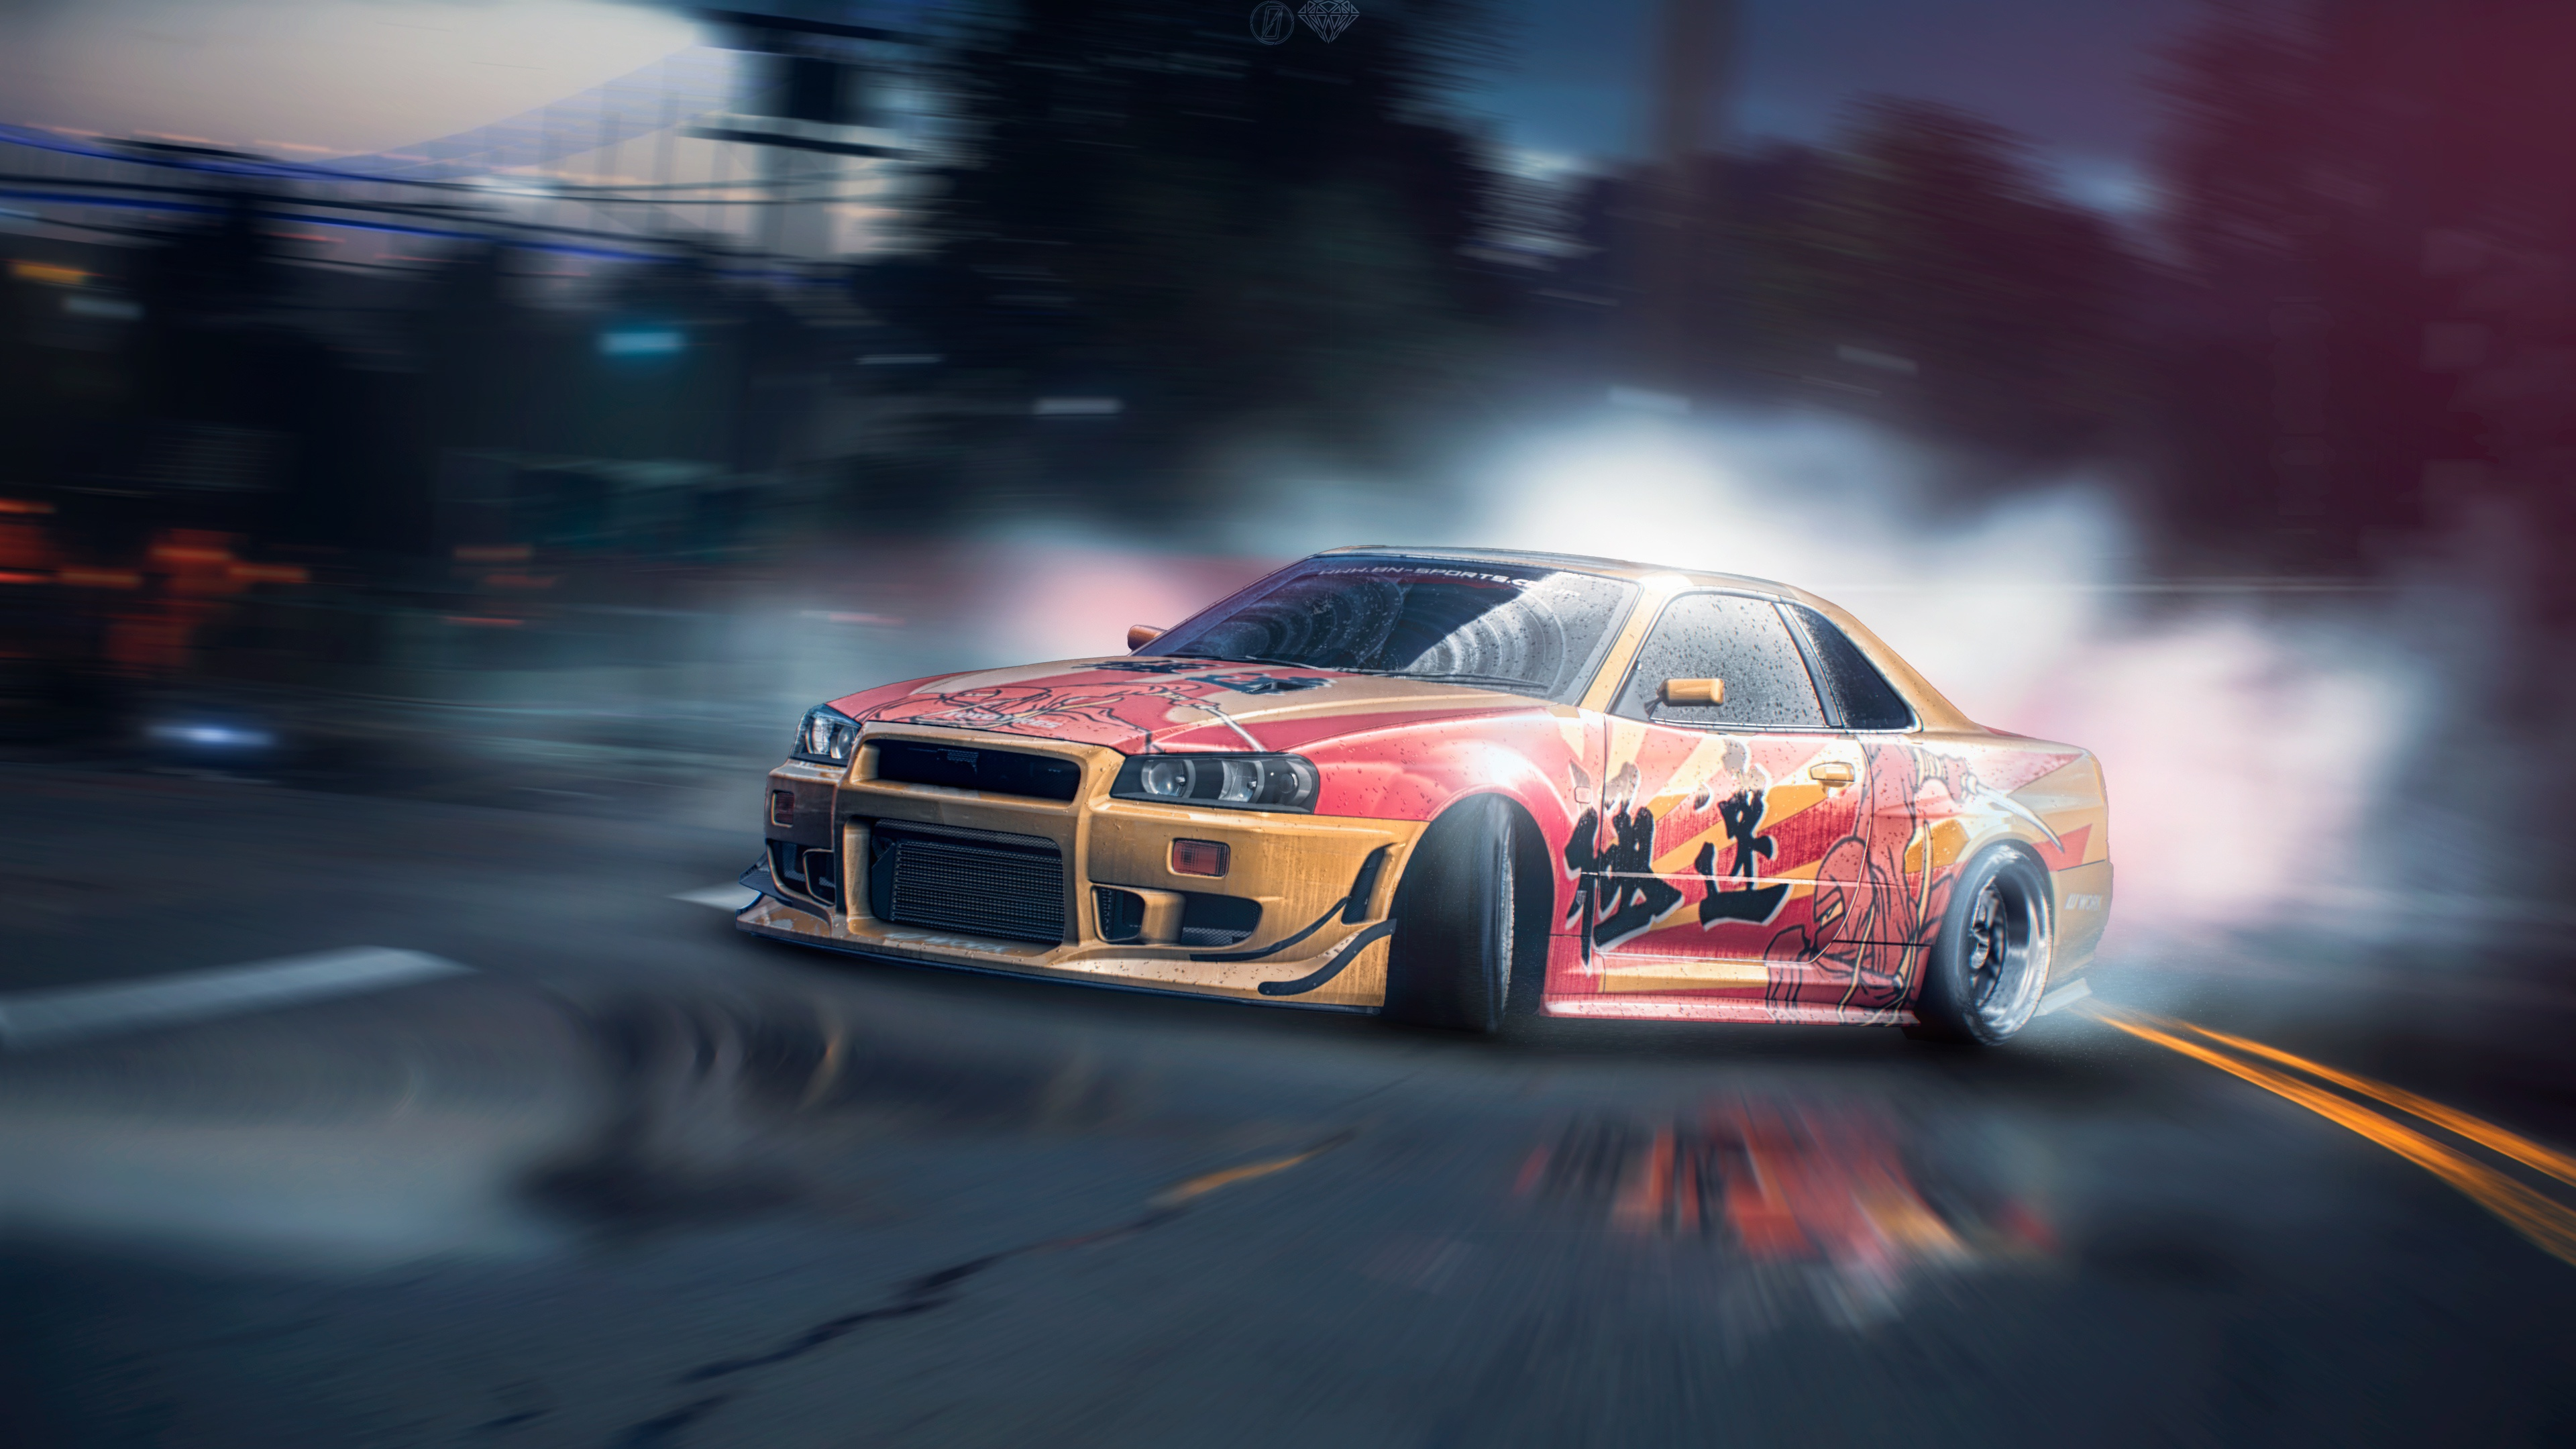 Nissan Skyline Drift Tuning R34 Need For Speed Game 3840x2160 Download Hd Wallpaper Wallpapertip